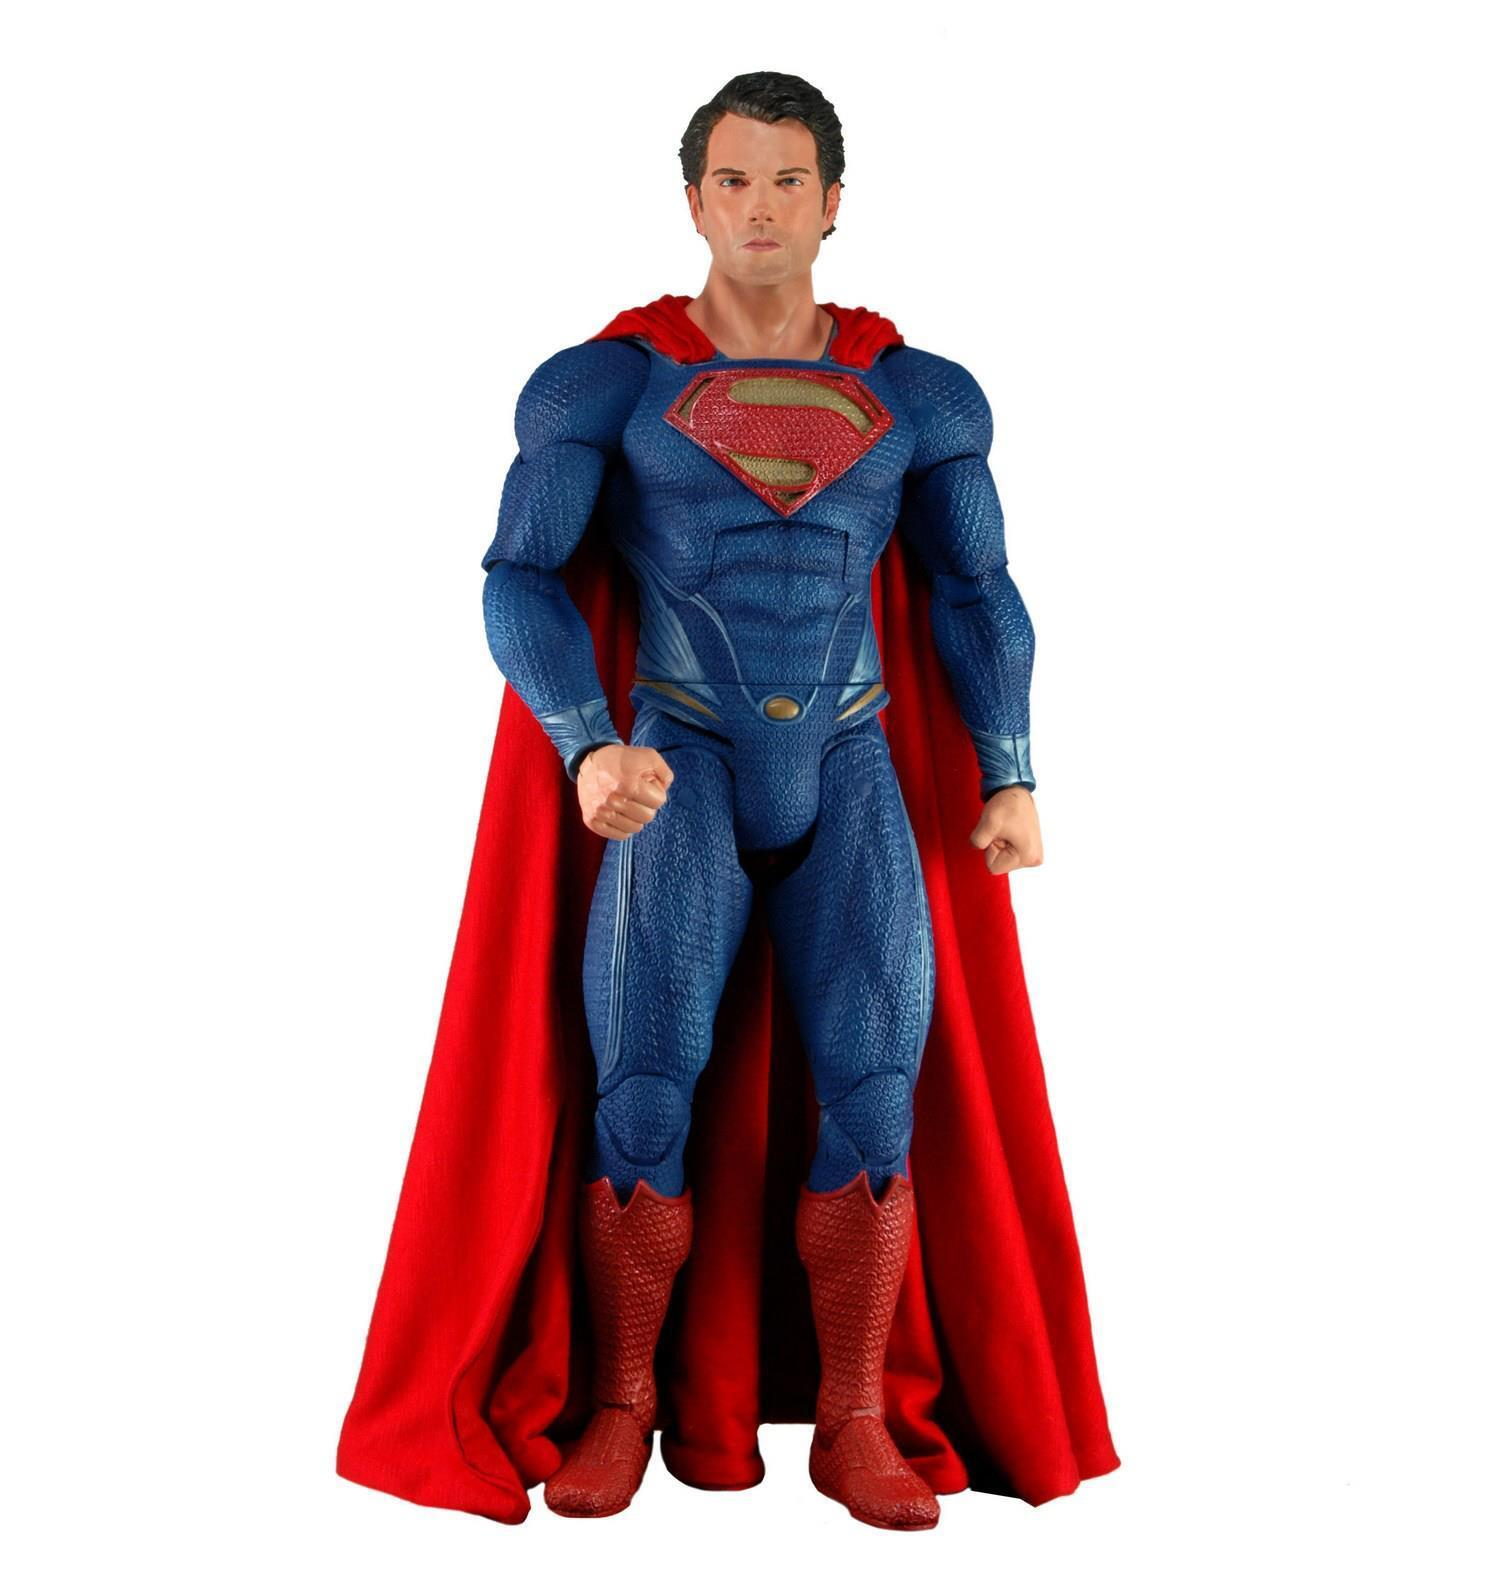 SUPERMAN - Man of Steel Movie 1/4 Scale Action Figure (NECA)  NEW